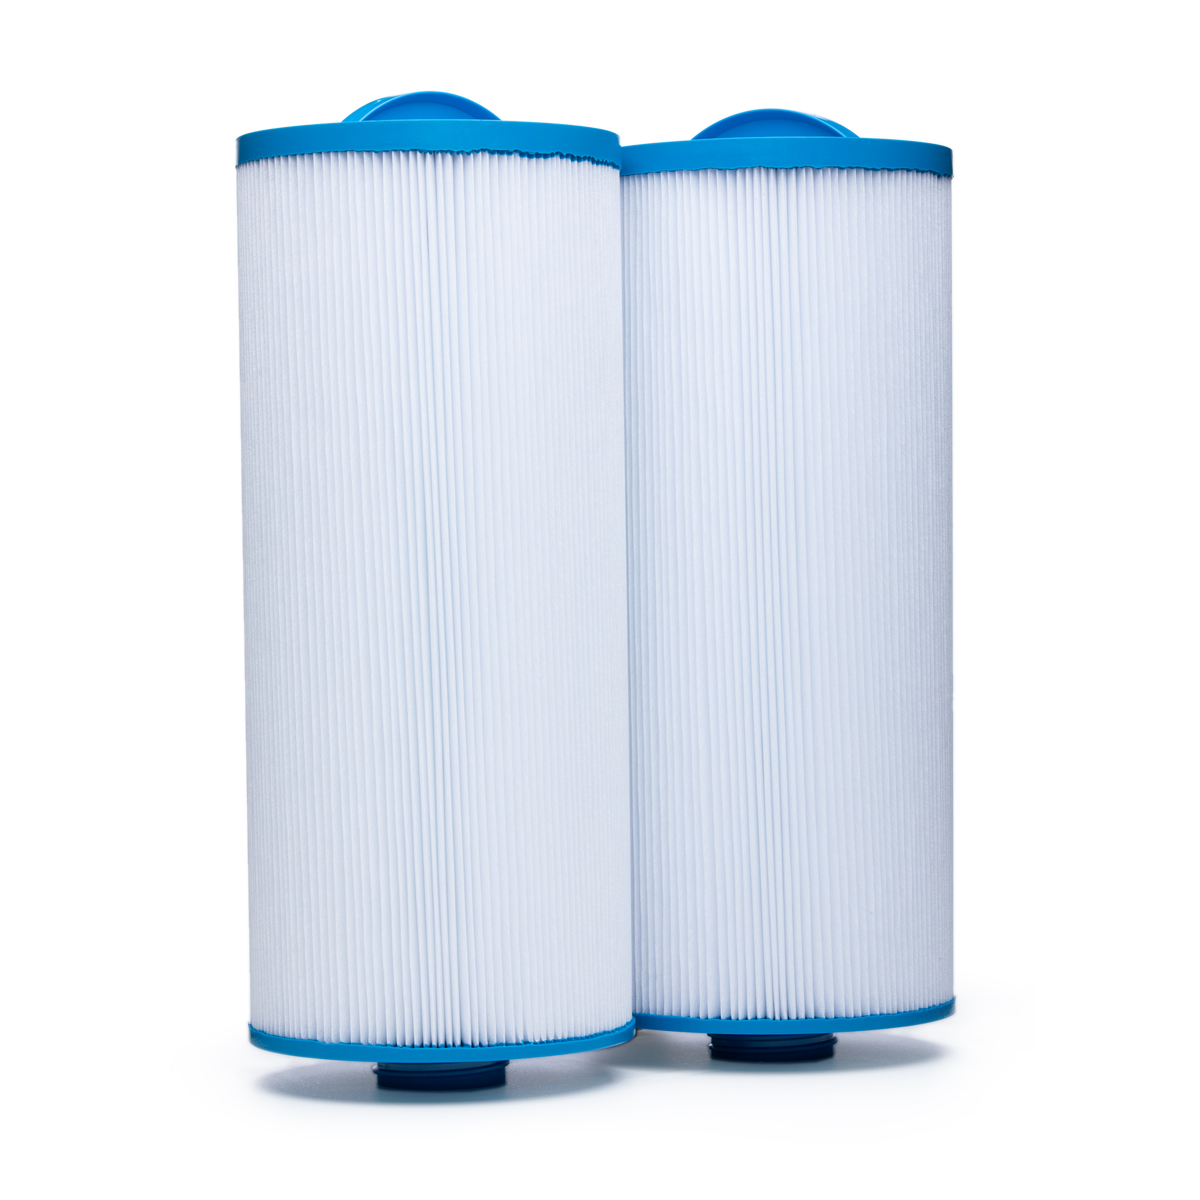 Filters for J300 Series (2 Filters)